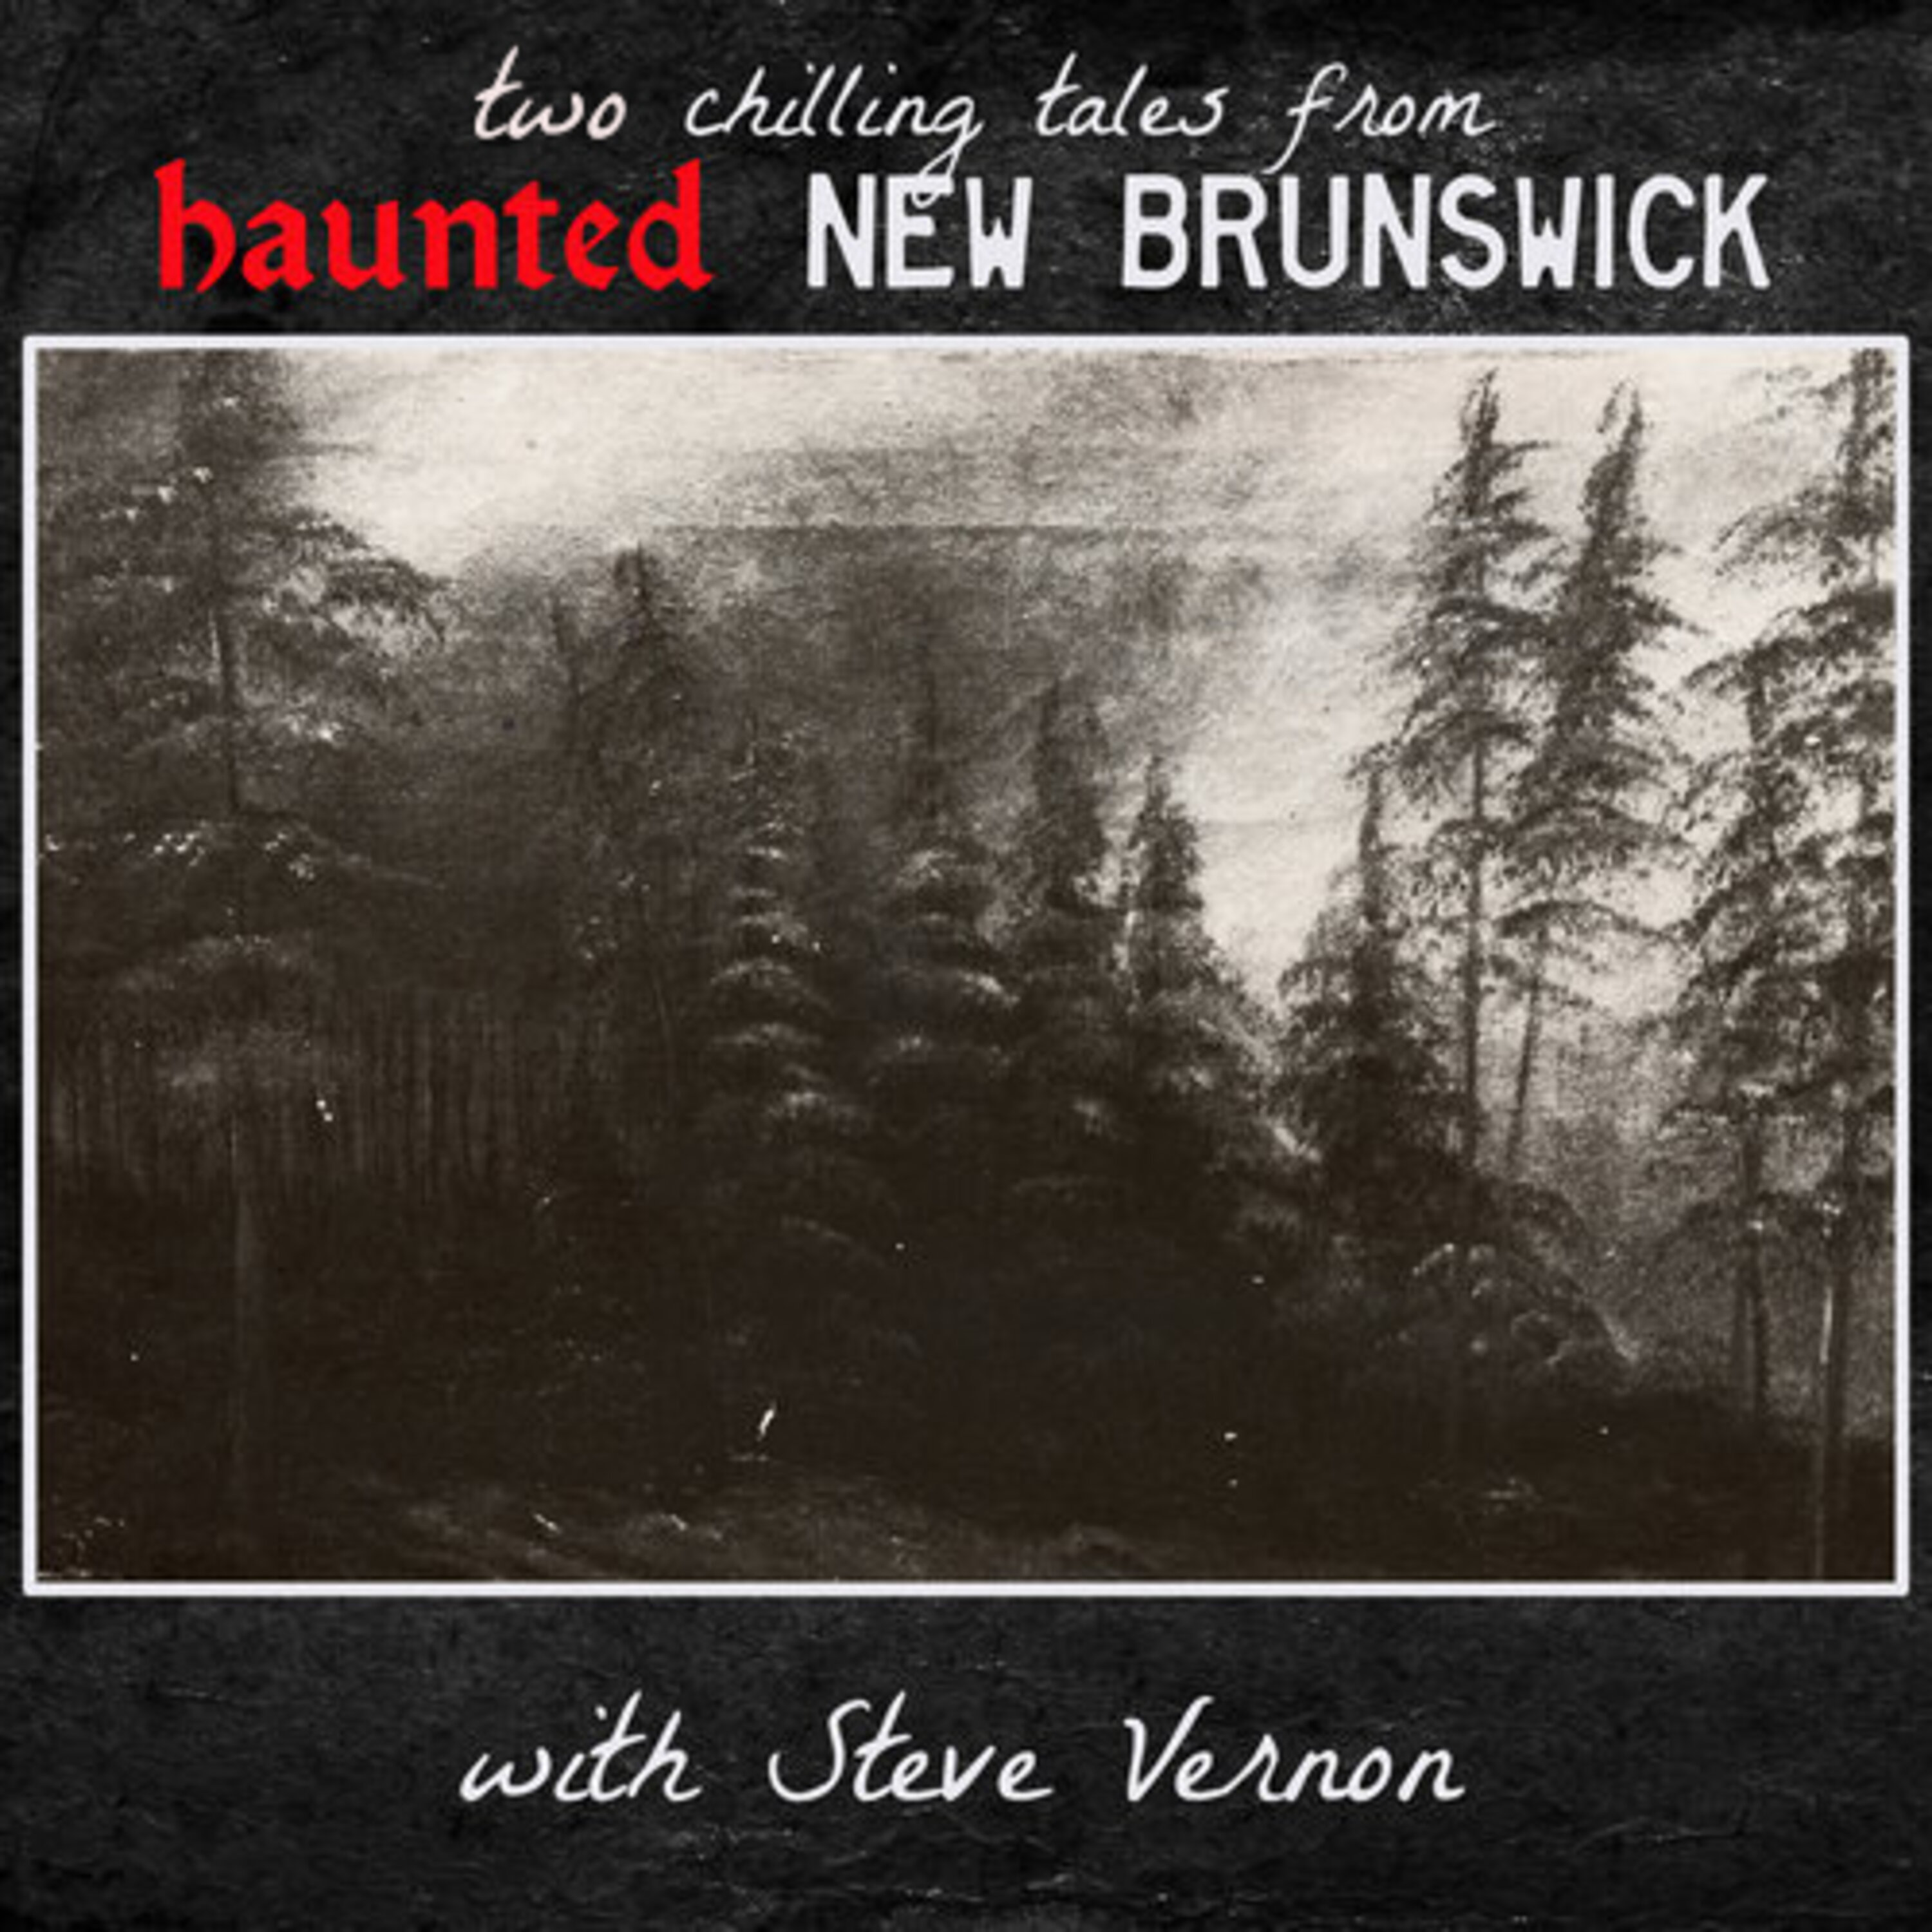 Two Chilling Tales from Haunted New Brunswick (with Steve Vernon)